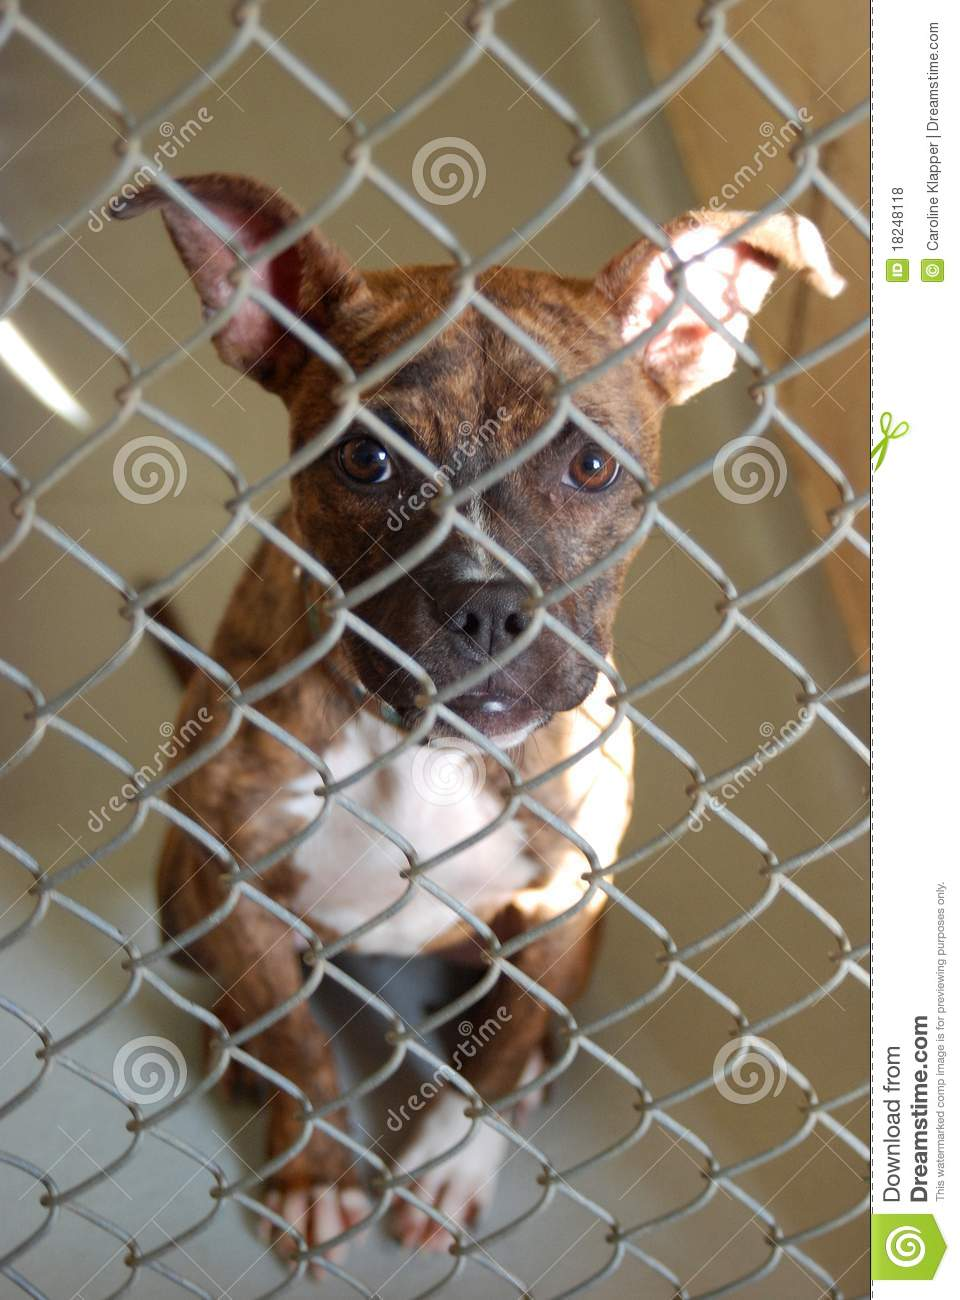 Dog In An Animal Shelter Royalty Free Stock Photos Image